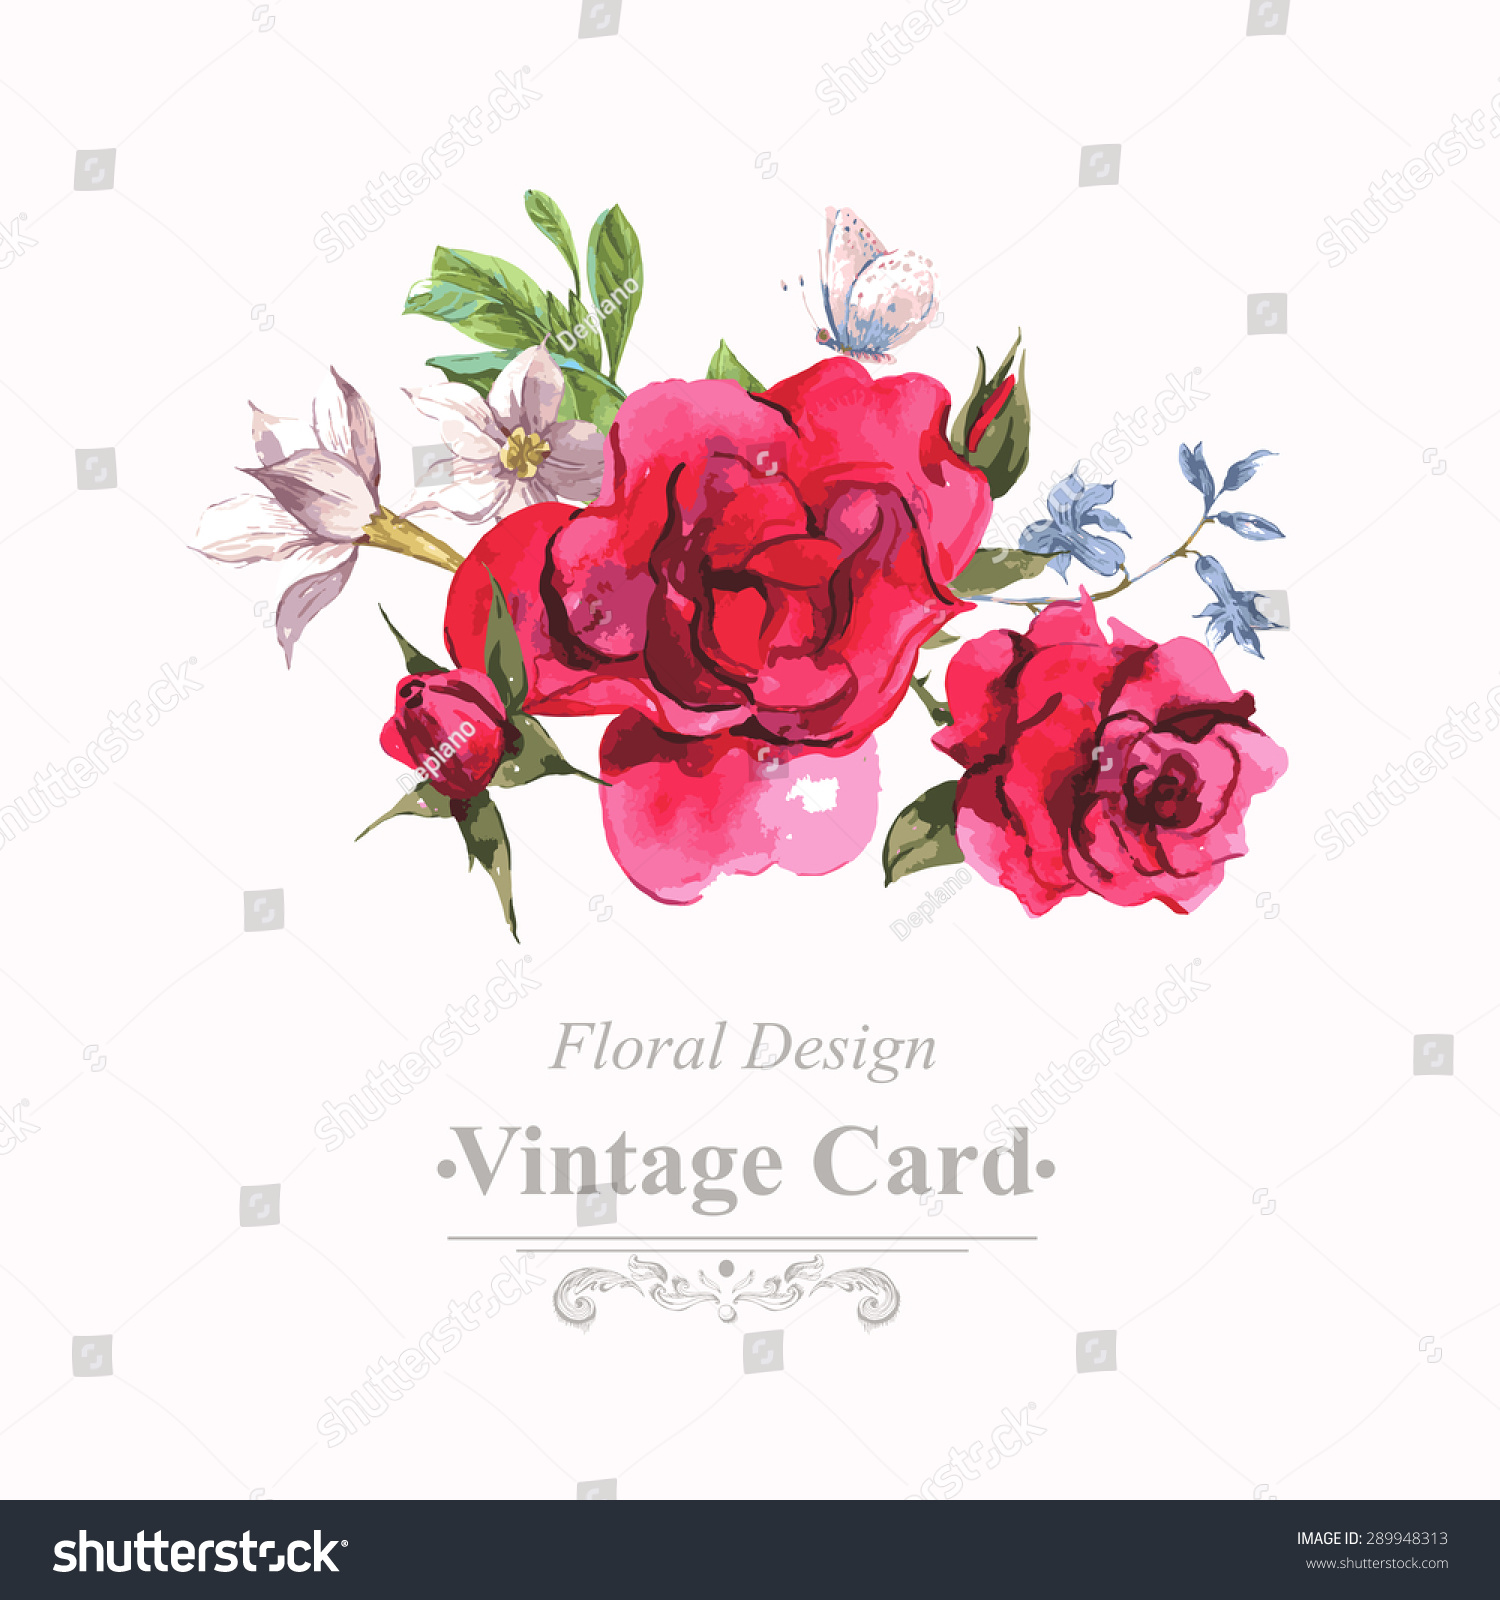 Watercolor Invitation Vintage Card Blooming Red Stock Vector ...